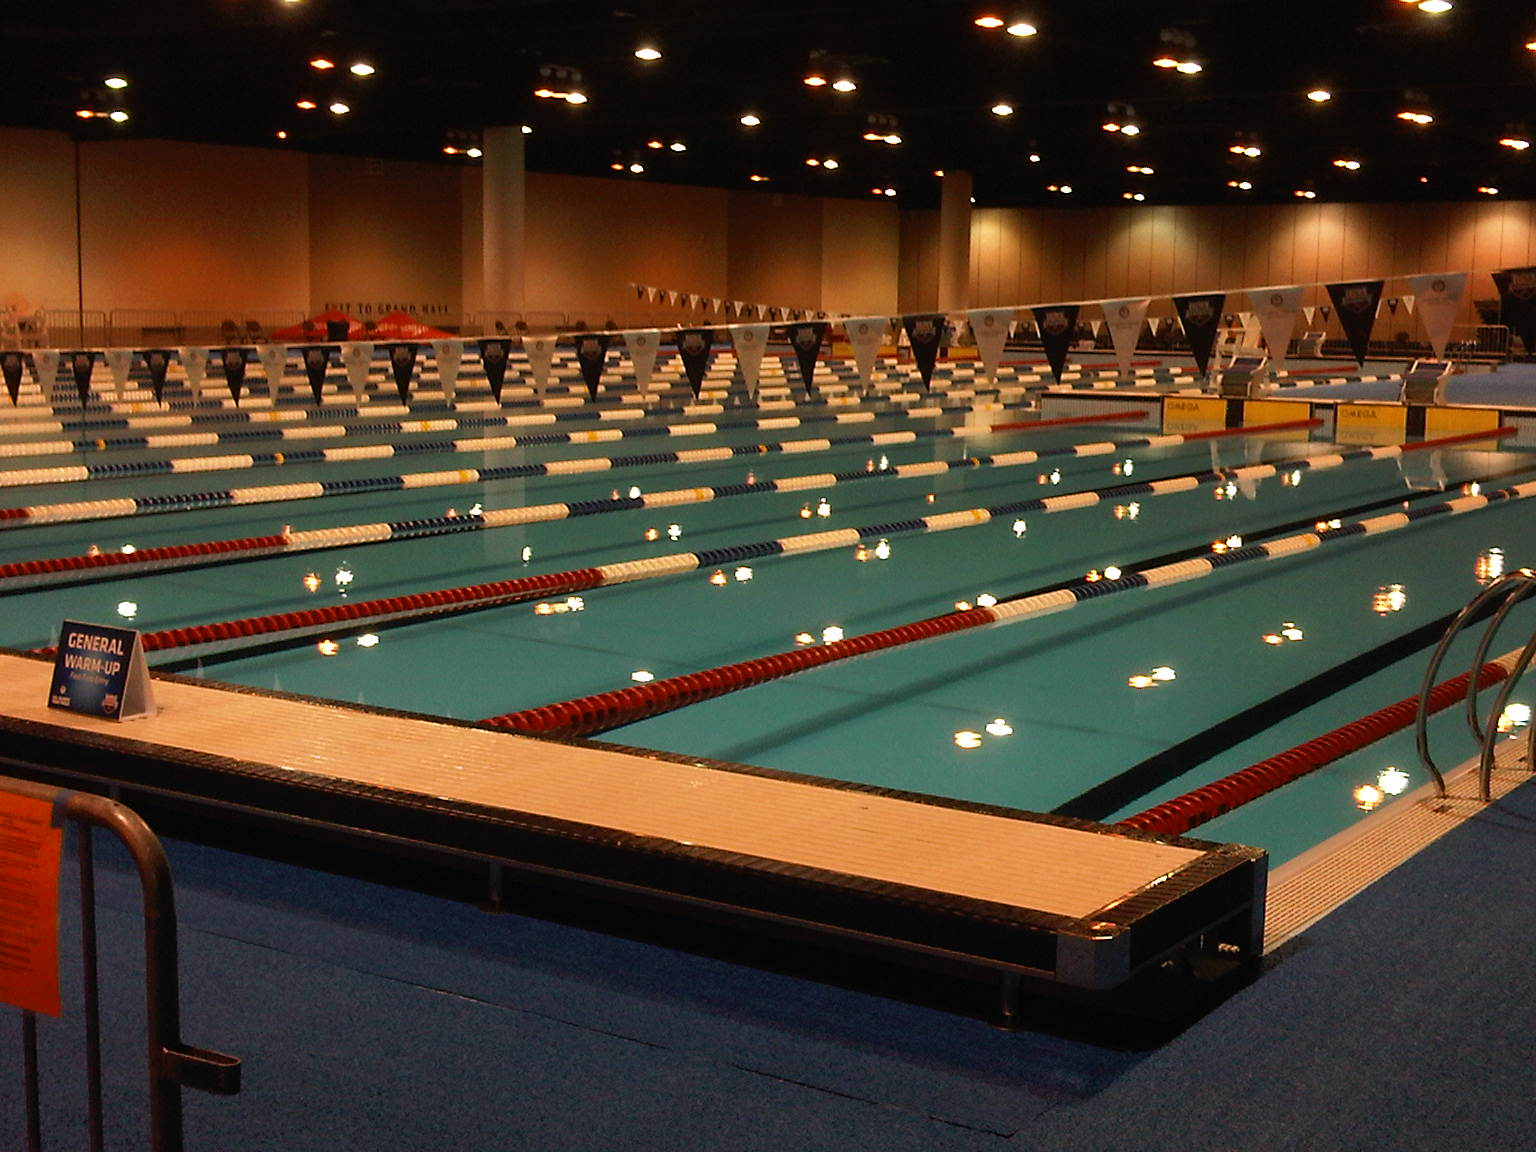 '12 Omaha Olympic Trials Warmup Pool